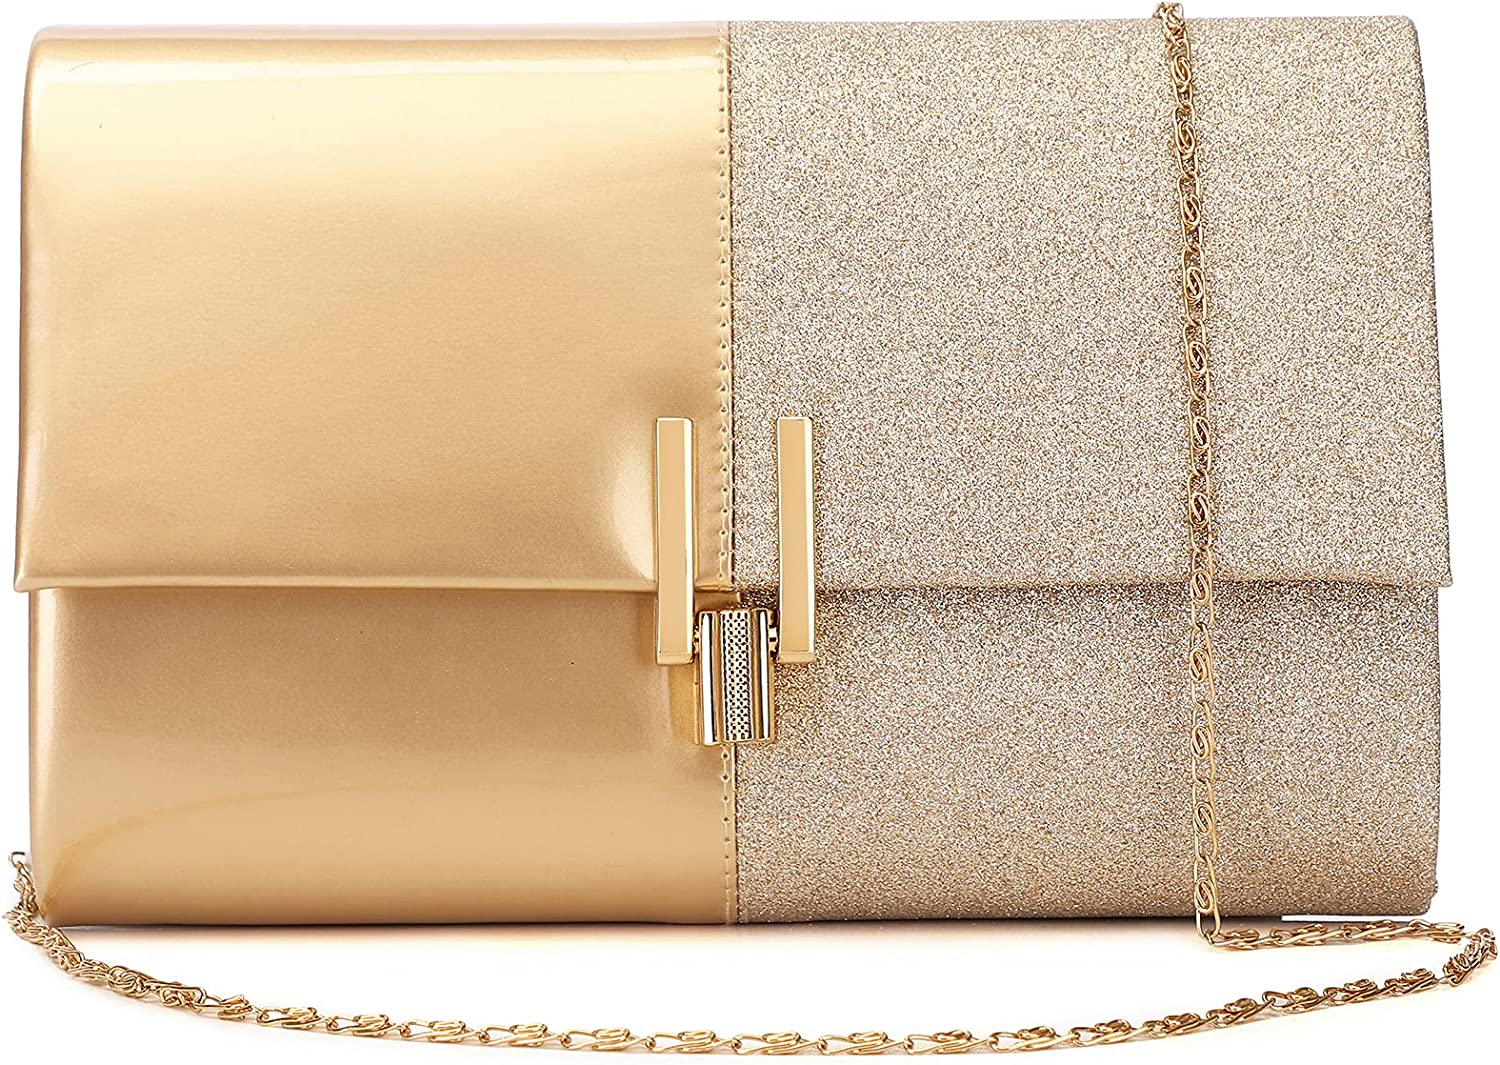 Labair Womens Sparkly Challenge the lowest price of Japan ☆ Ultra-Cheap Deals Clutch Purse Glitter Coc Party Bag Evening